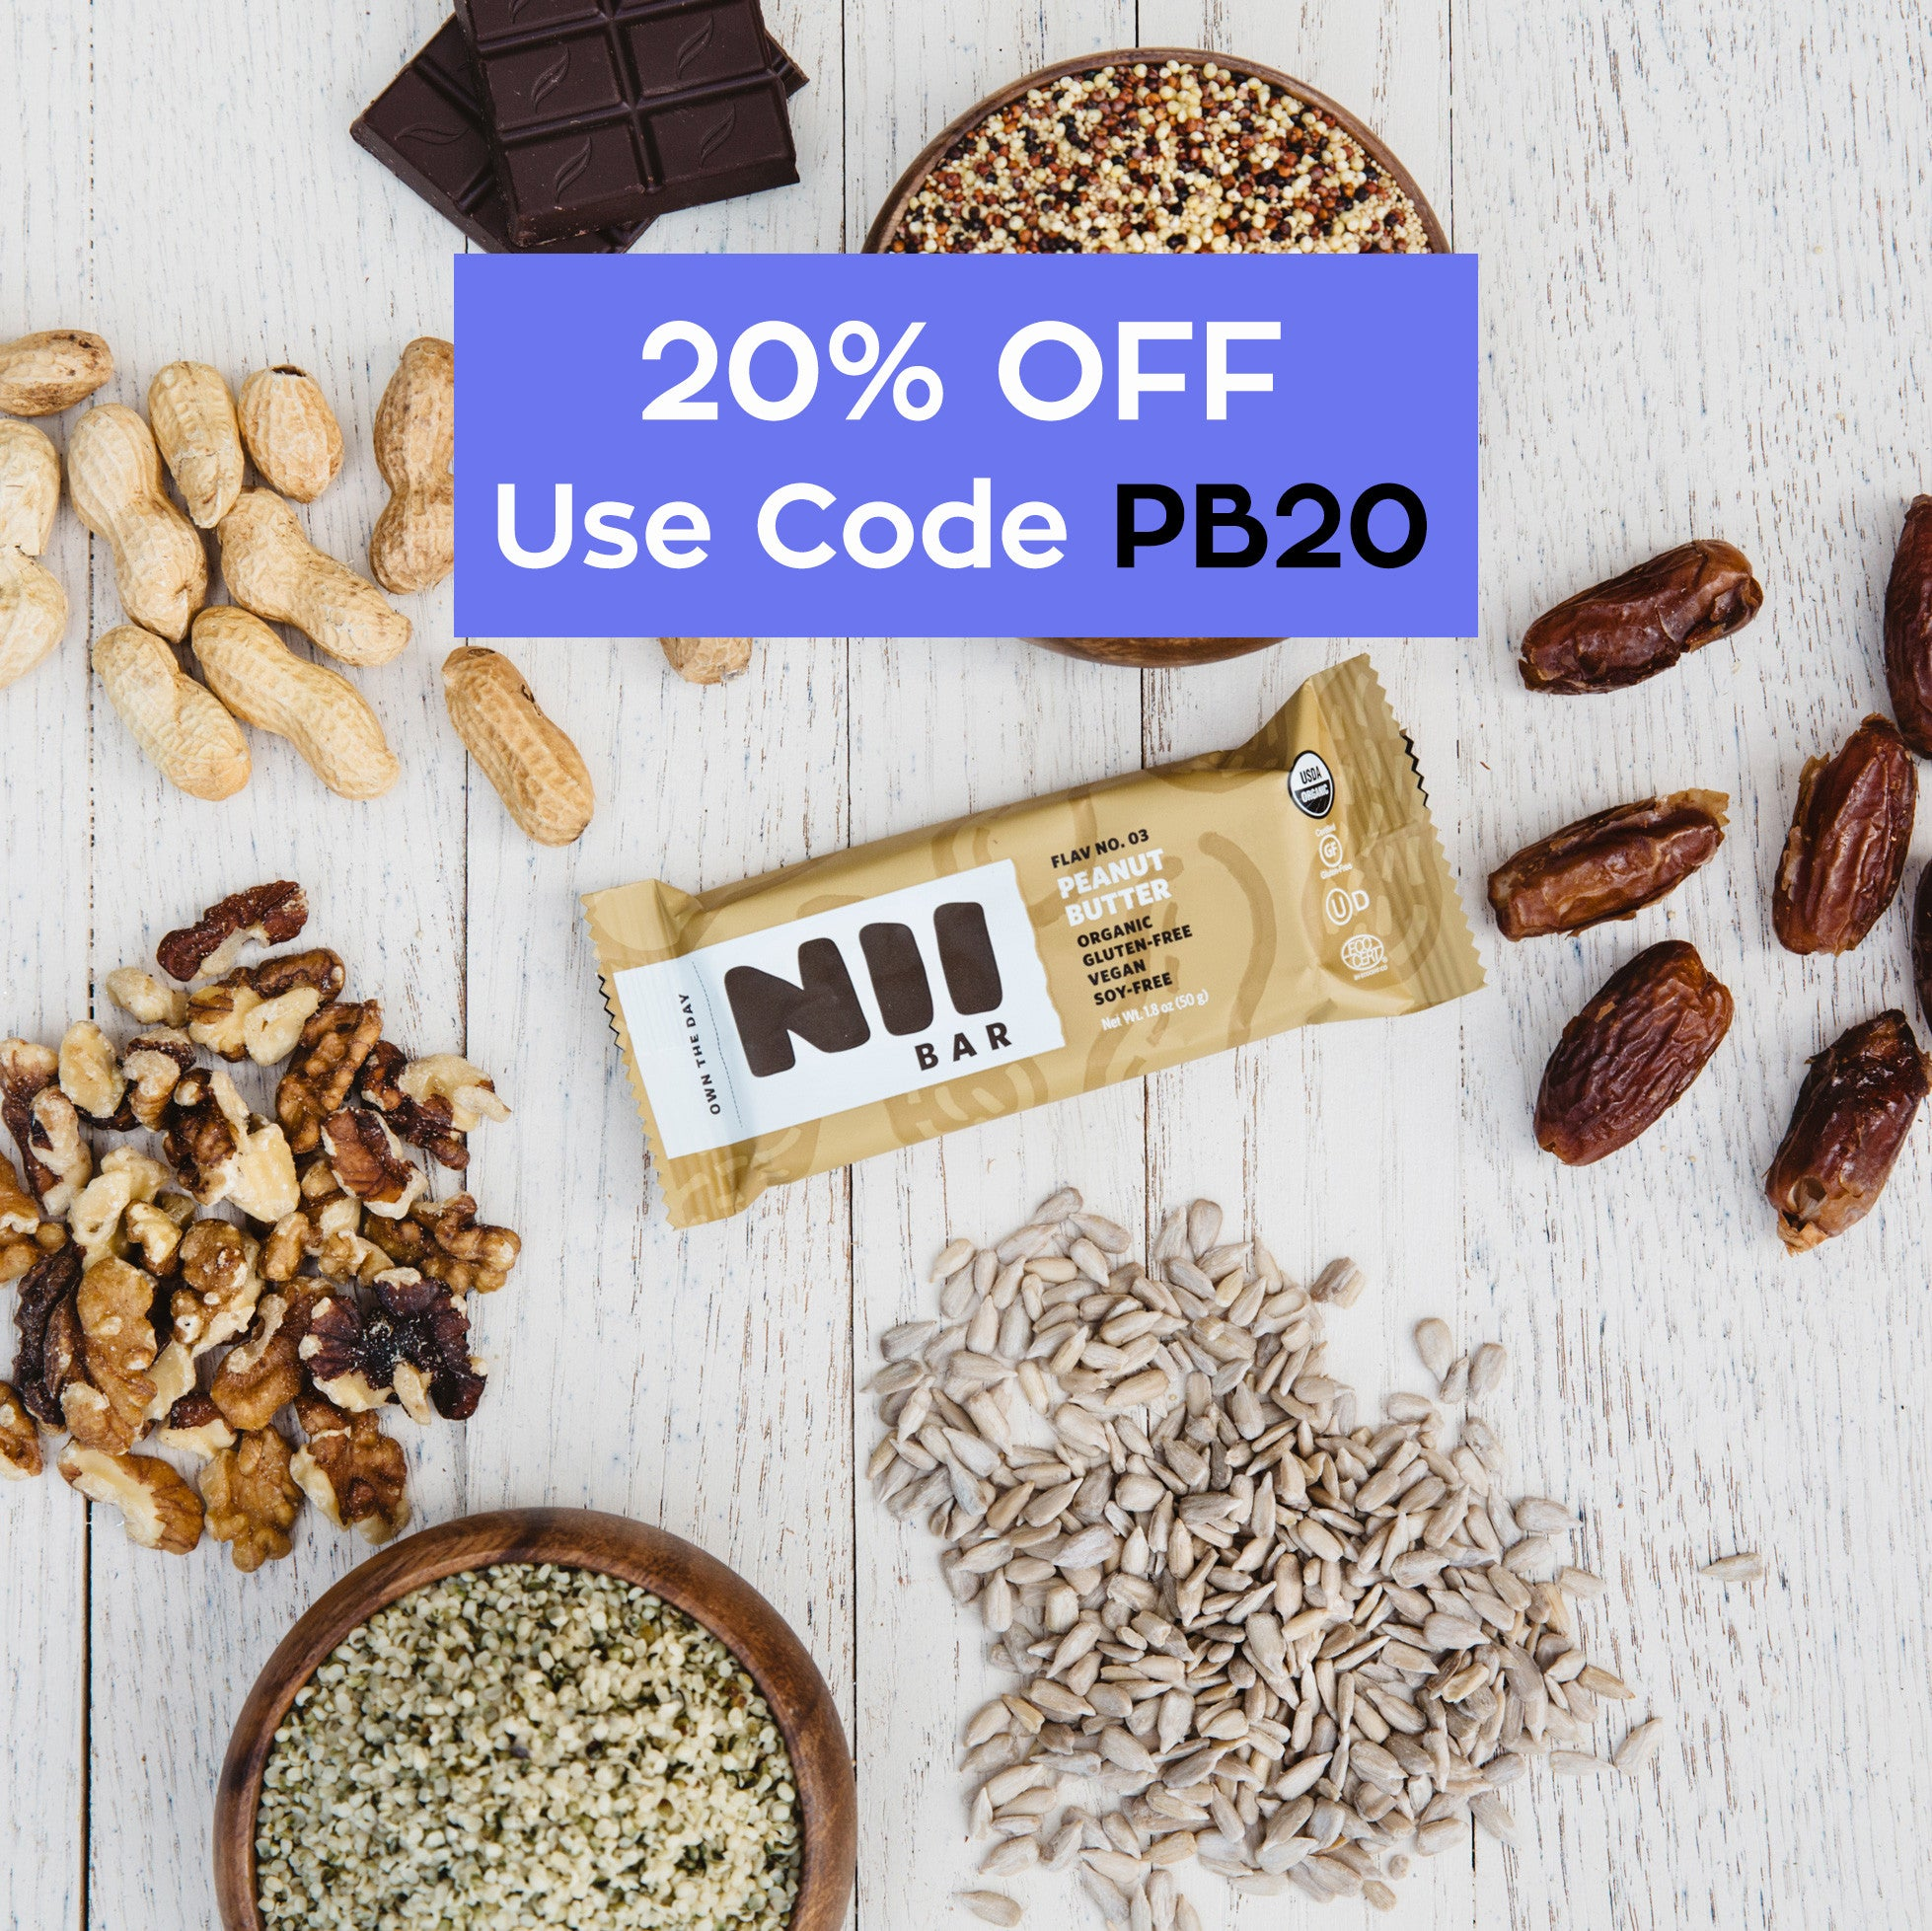 Peanut Butter (20% OFF) USE CODE PB20